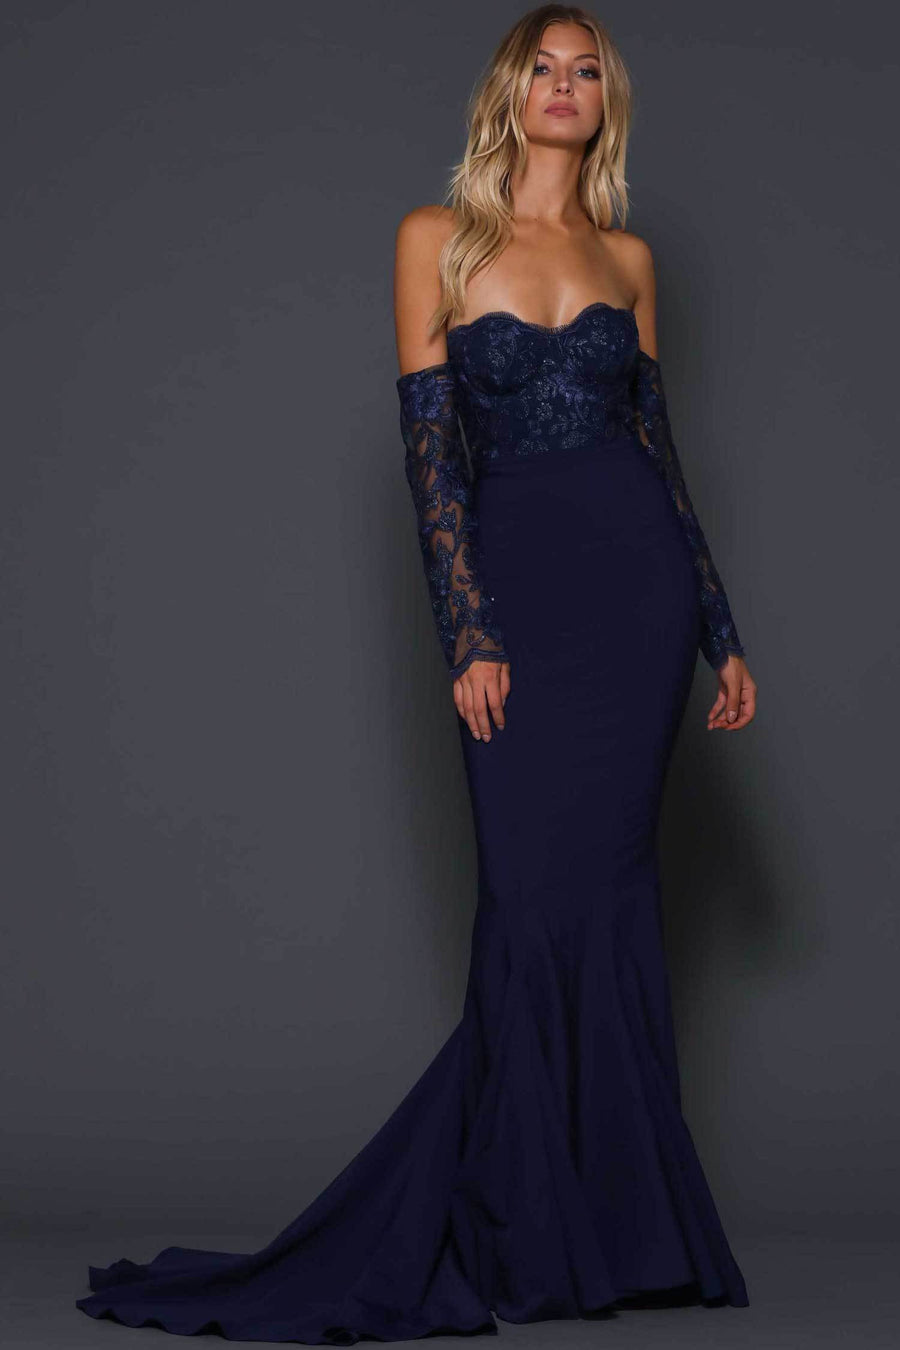 Shop Online Raquel in Midnight by Elle Zeitoune  Frockaholics Dresses